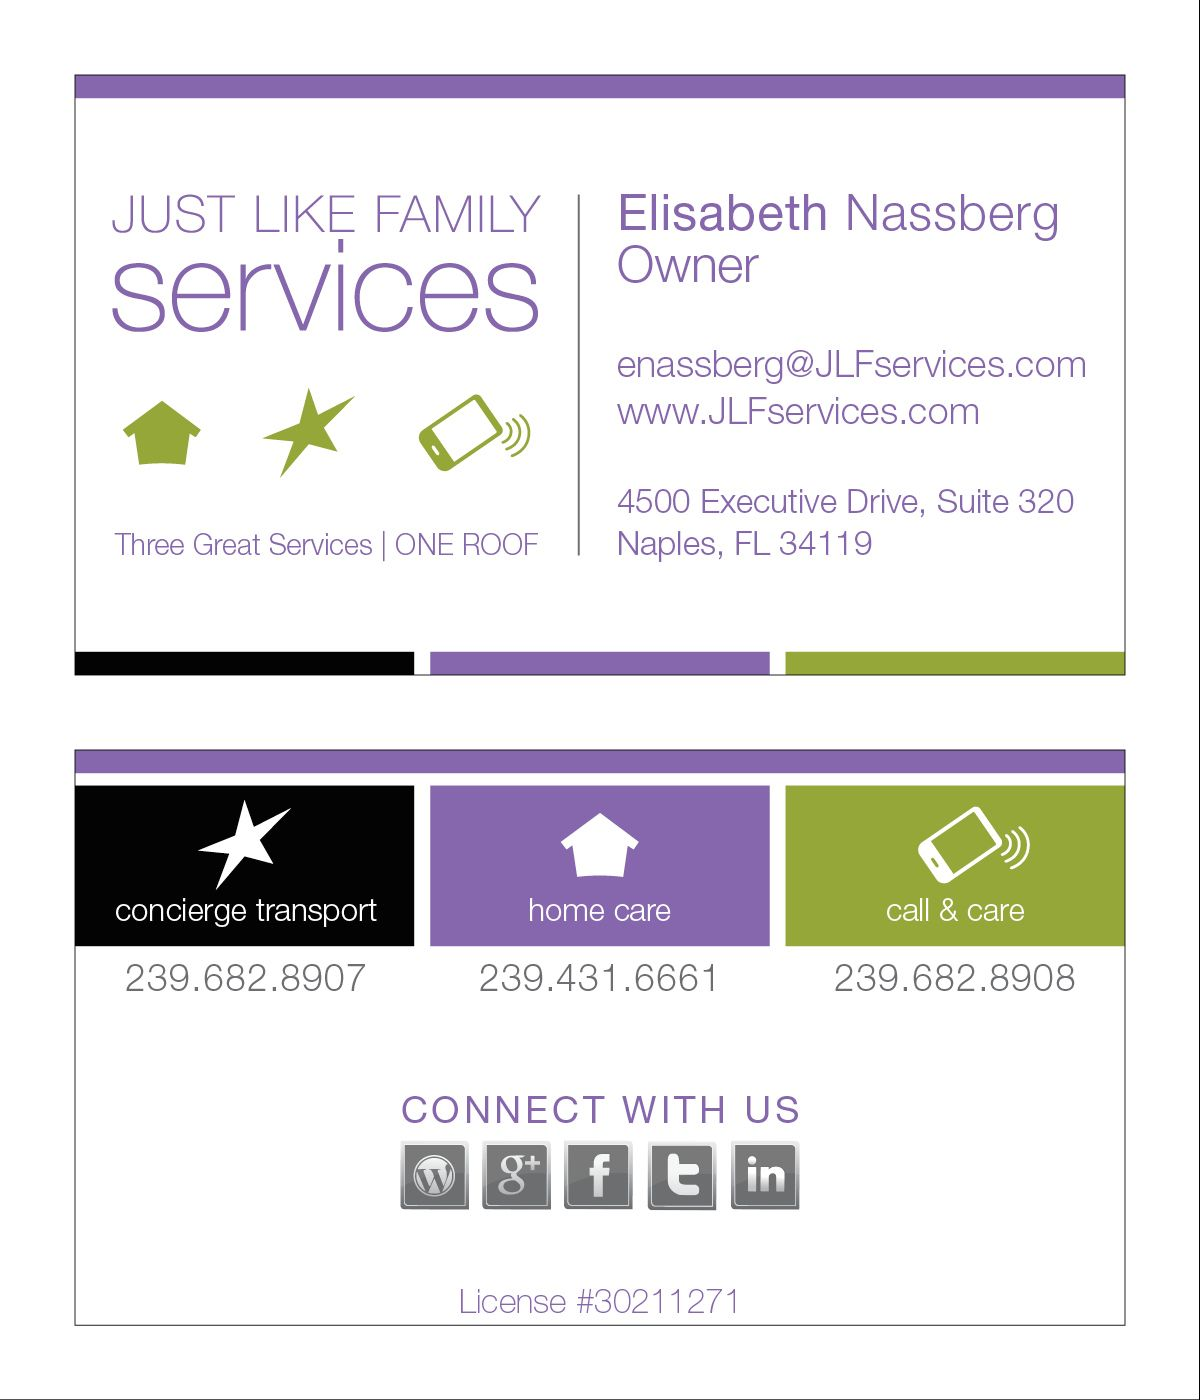 Just Like Family Business Card #MARKITgroup #GraphicDesign | MIG ...